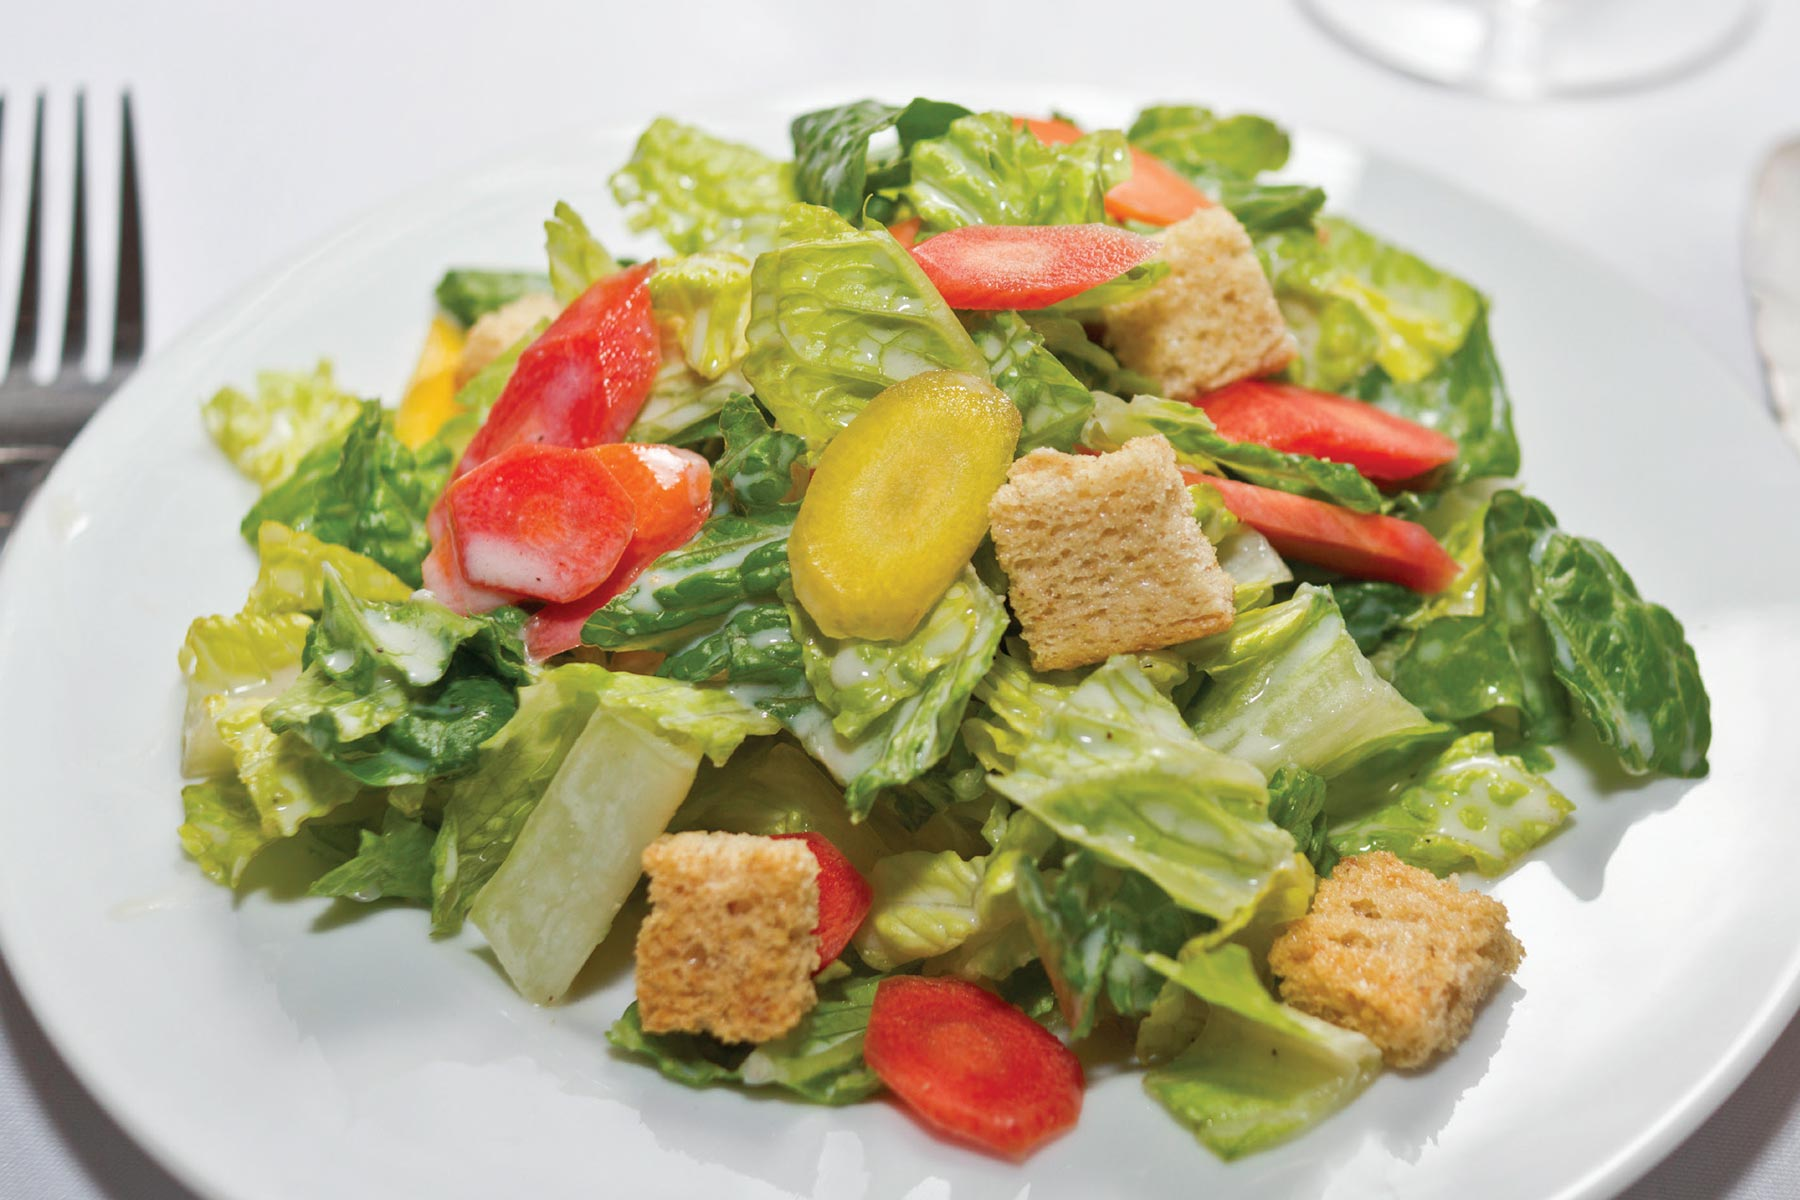 This Vegan Caesar Salad recipe is Ornish Lifestyle Medicine™ Approved and posted by Sentara Healthcare in Hampton Roads